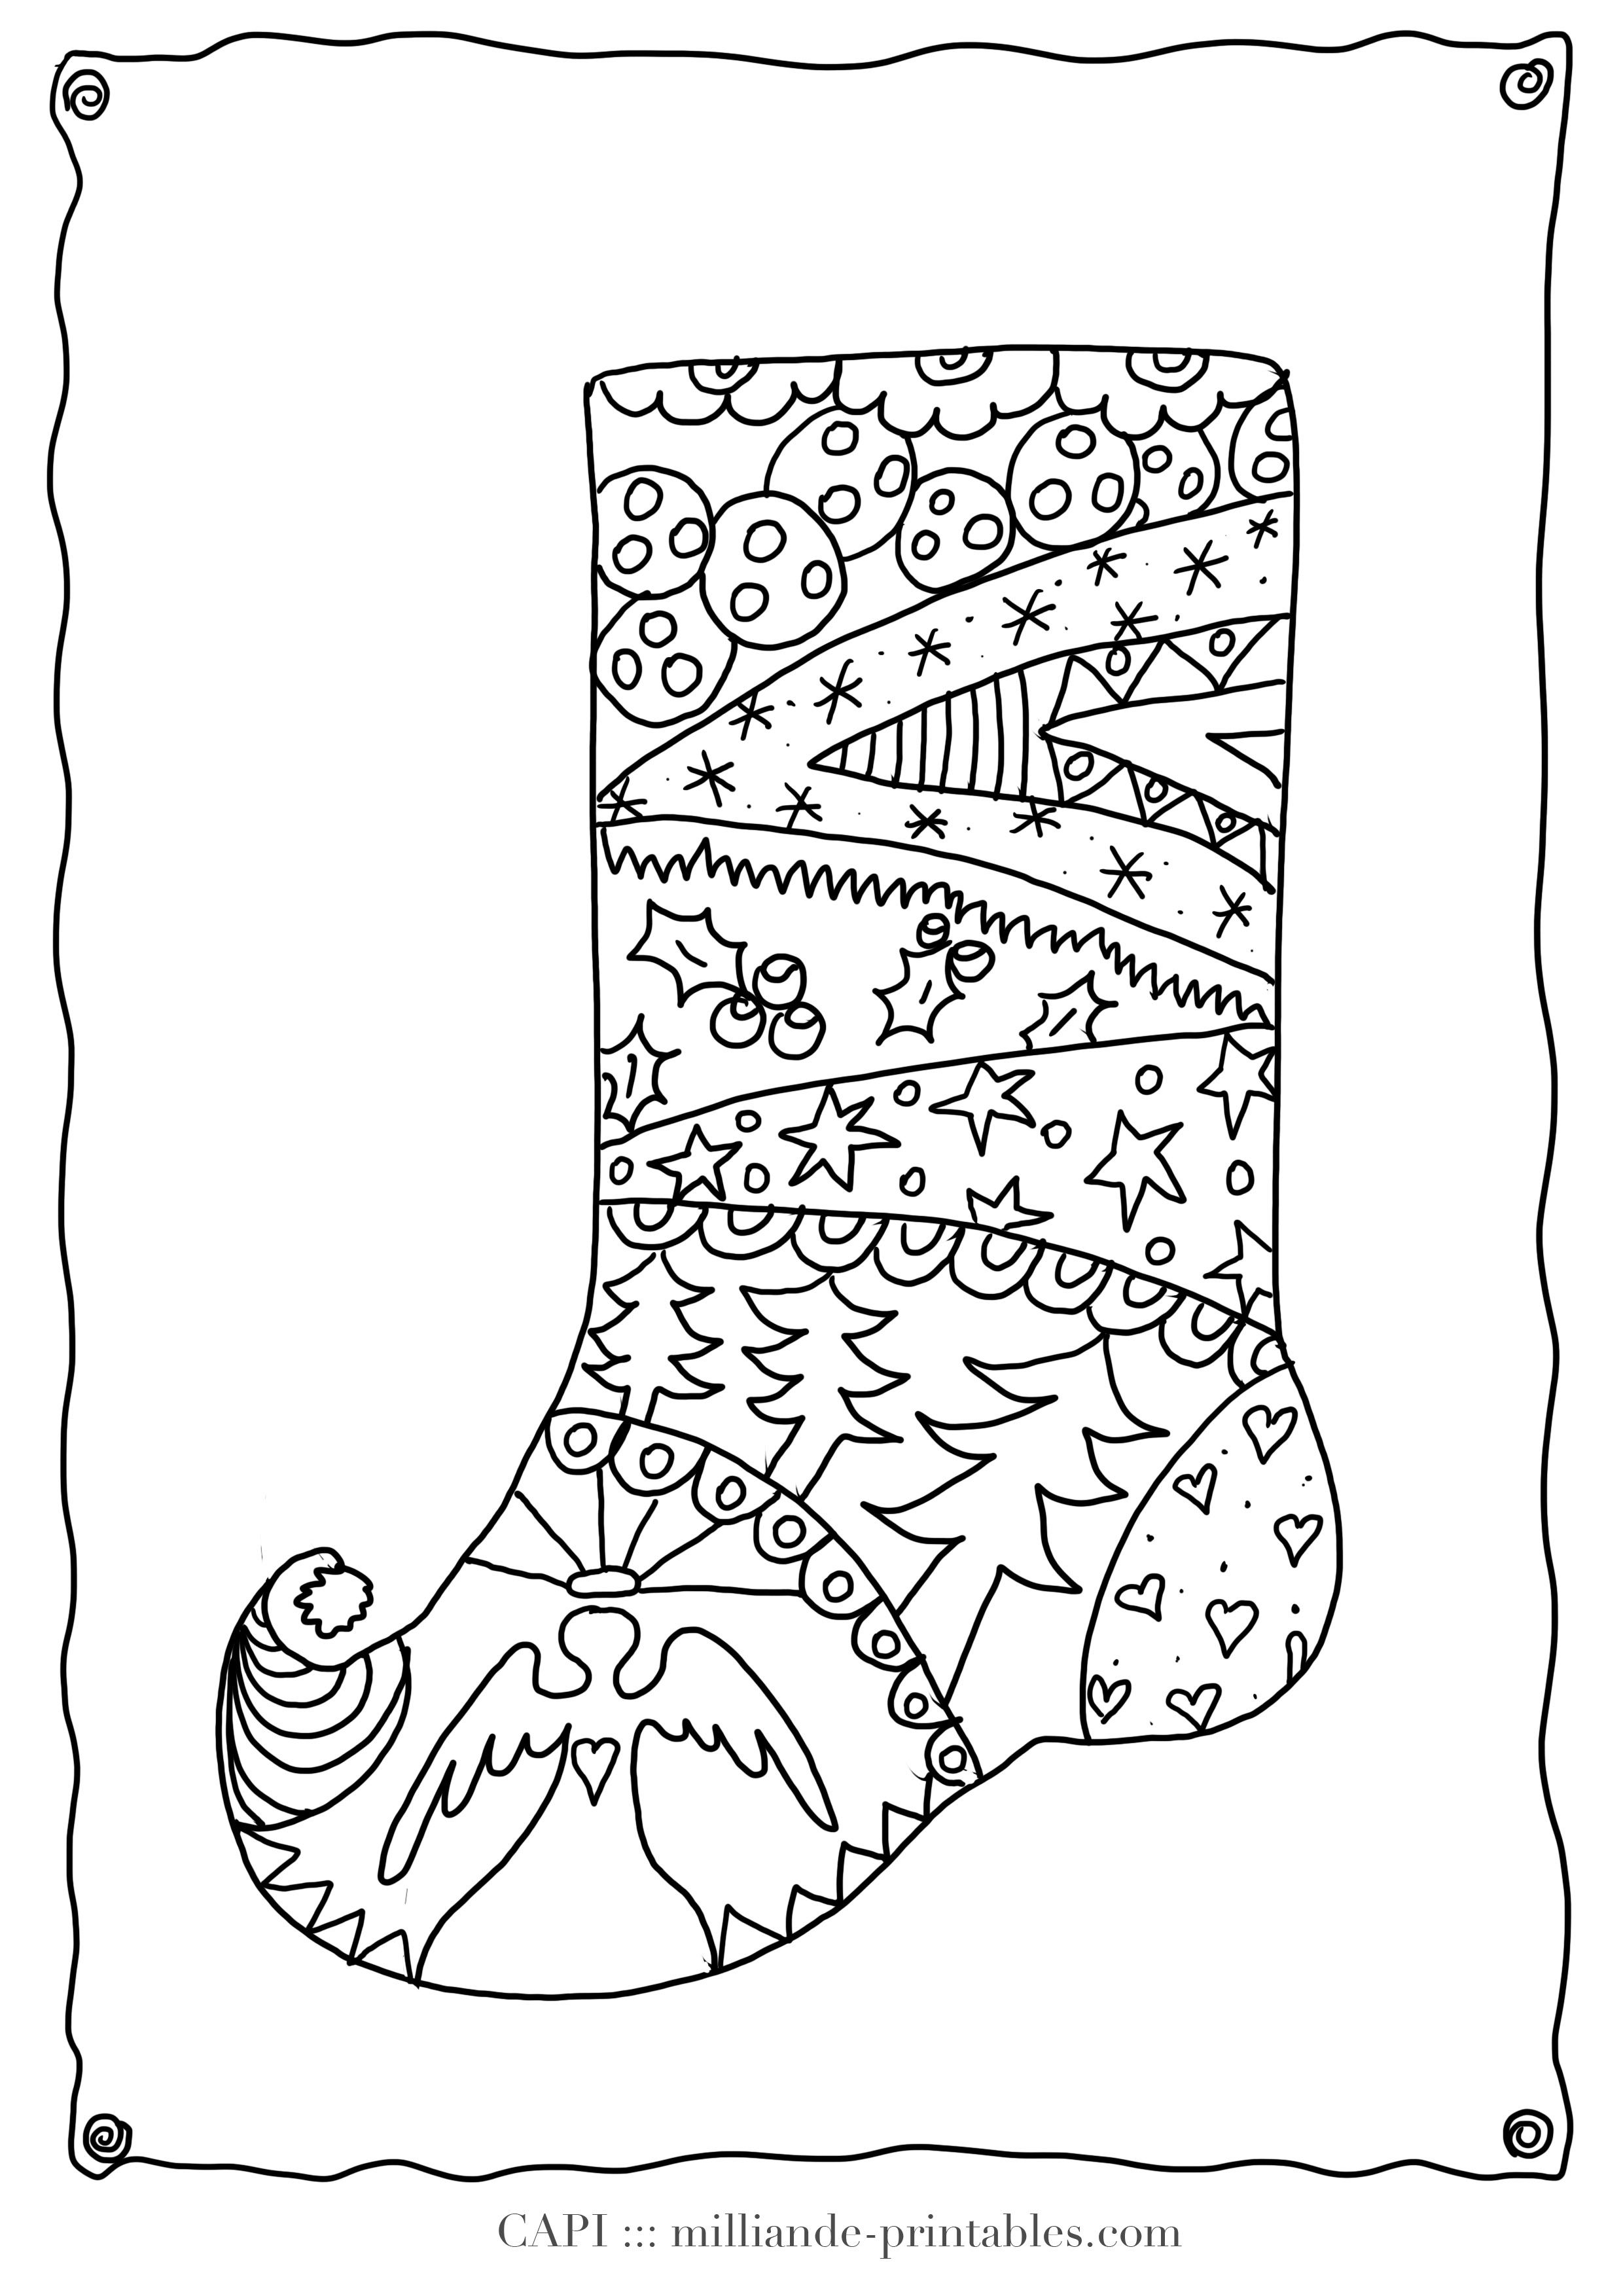 Coloring Sheets Christmas Stocking : Christmas adult coloring pages home